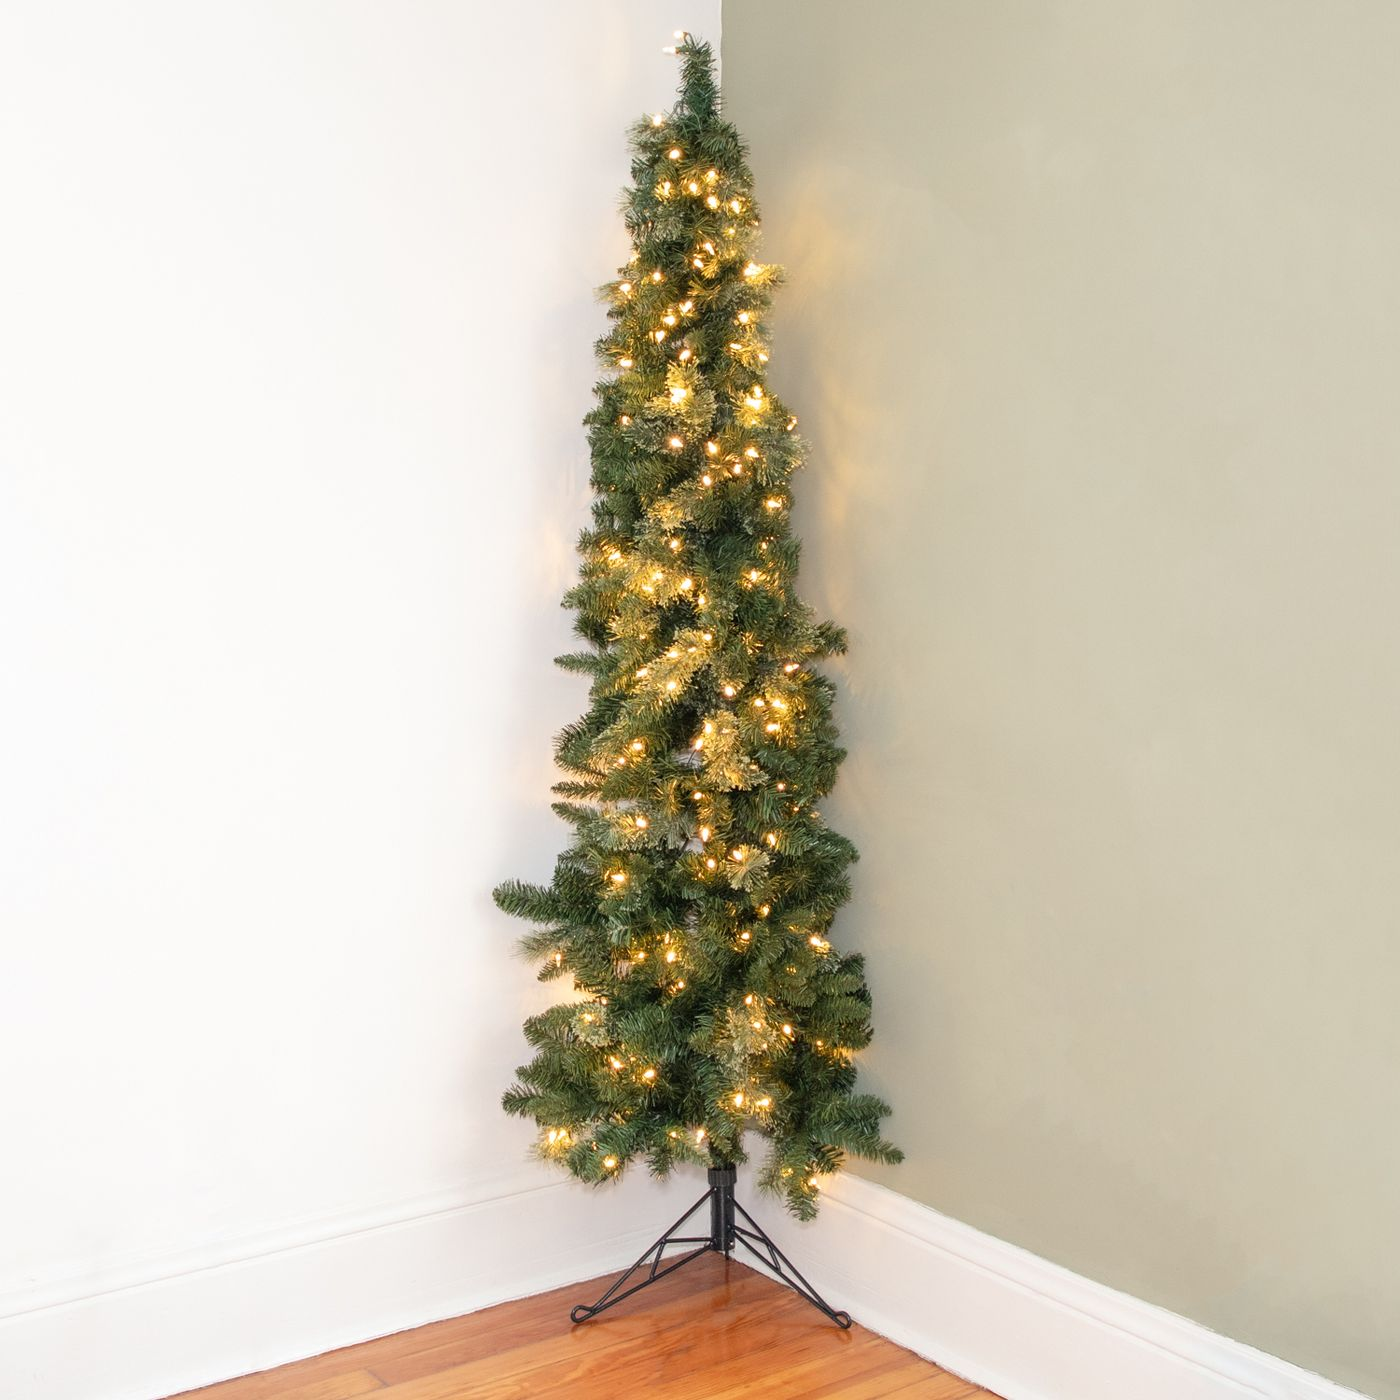 Home Heritage 5 Foot Pre-Lit Slim Indoor Artificial Corner Christmas Holiday Tree with White LED Lights, Folding Metal Stand and Easy Assembly - image 2 of 6